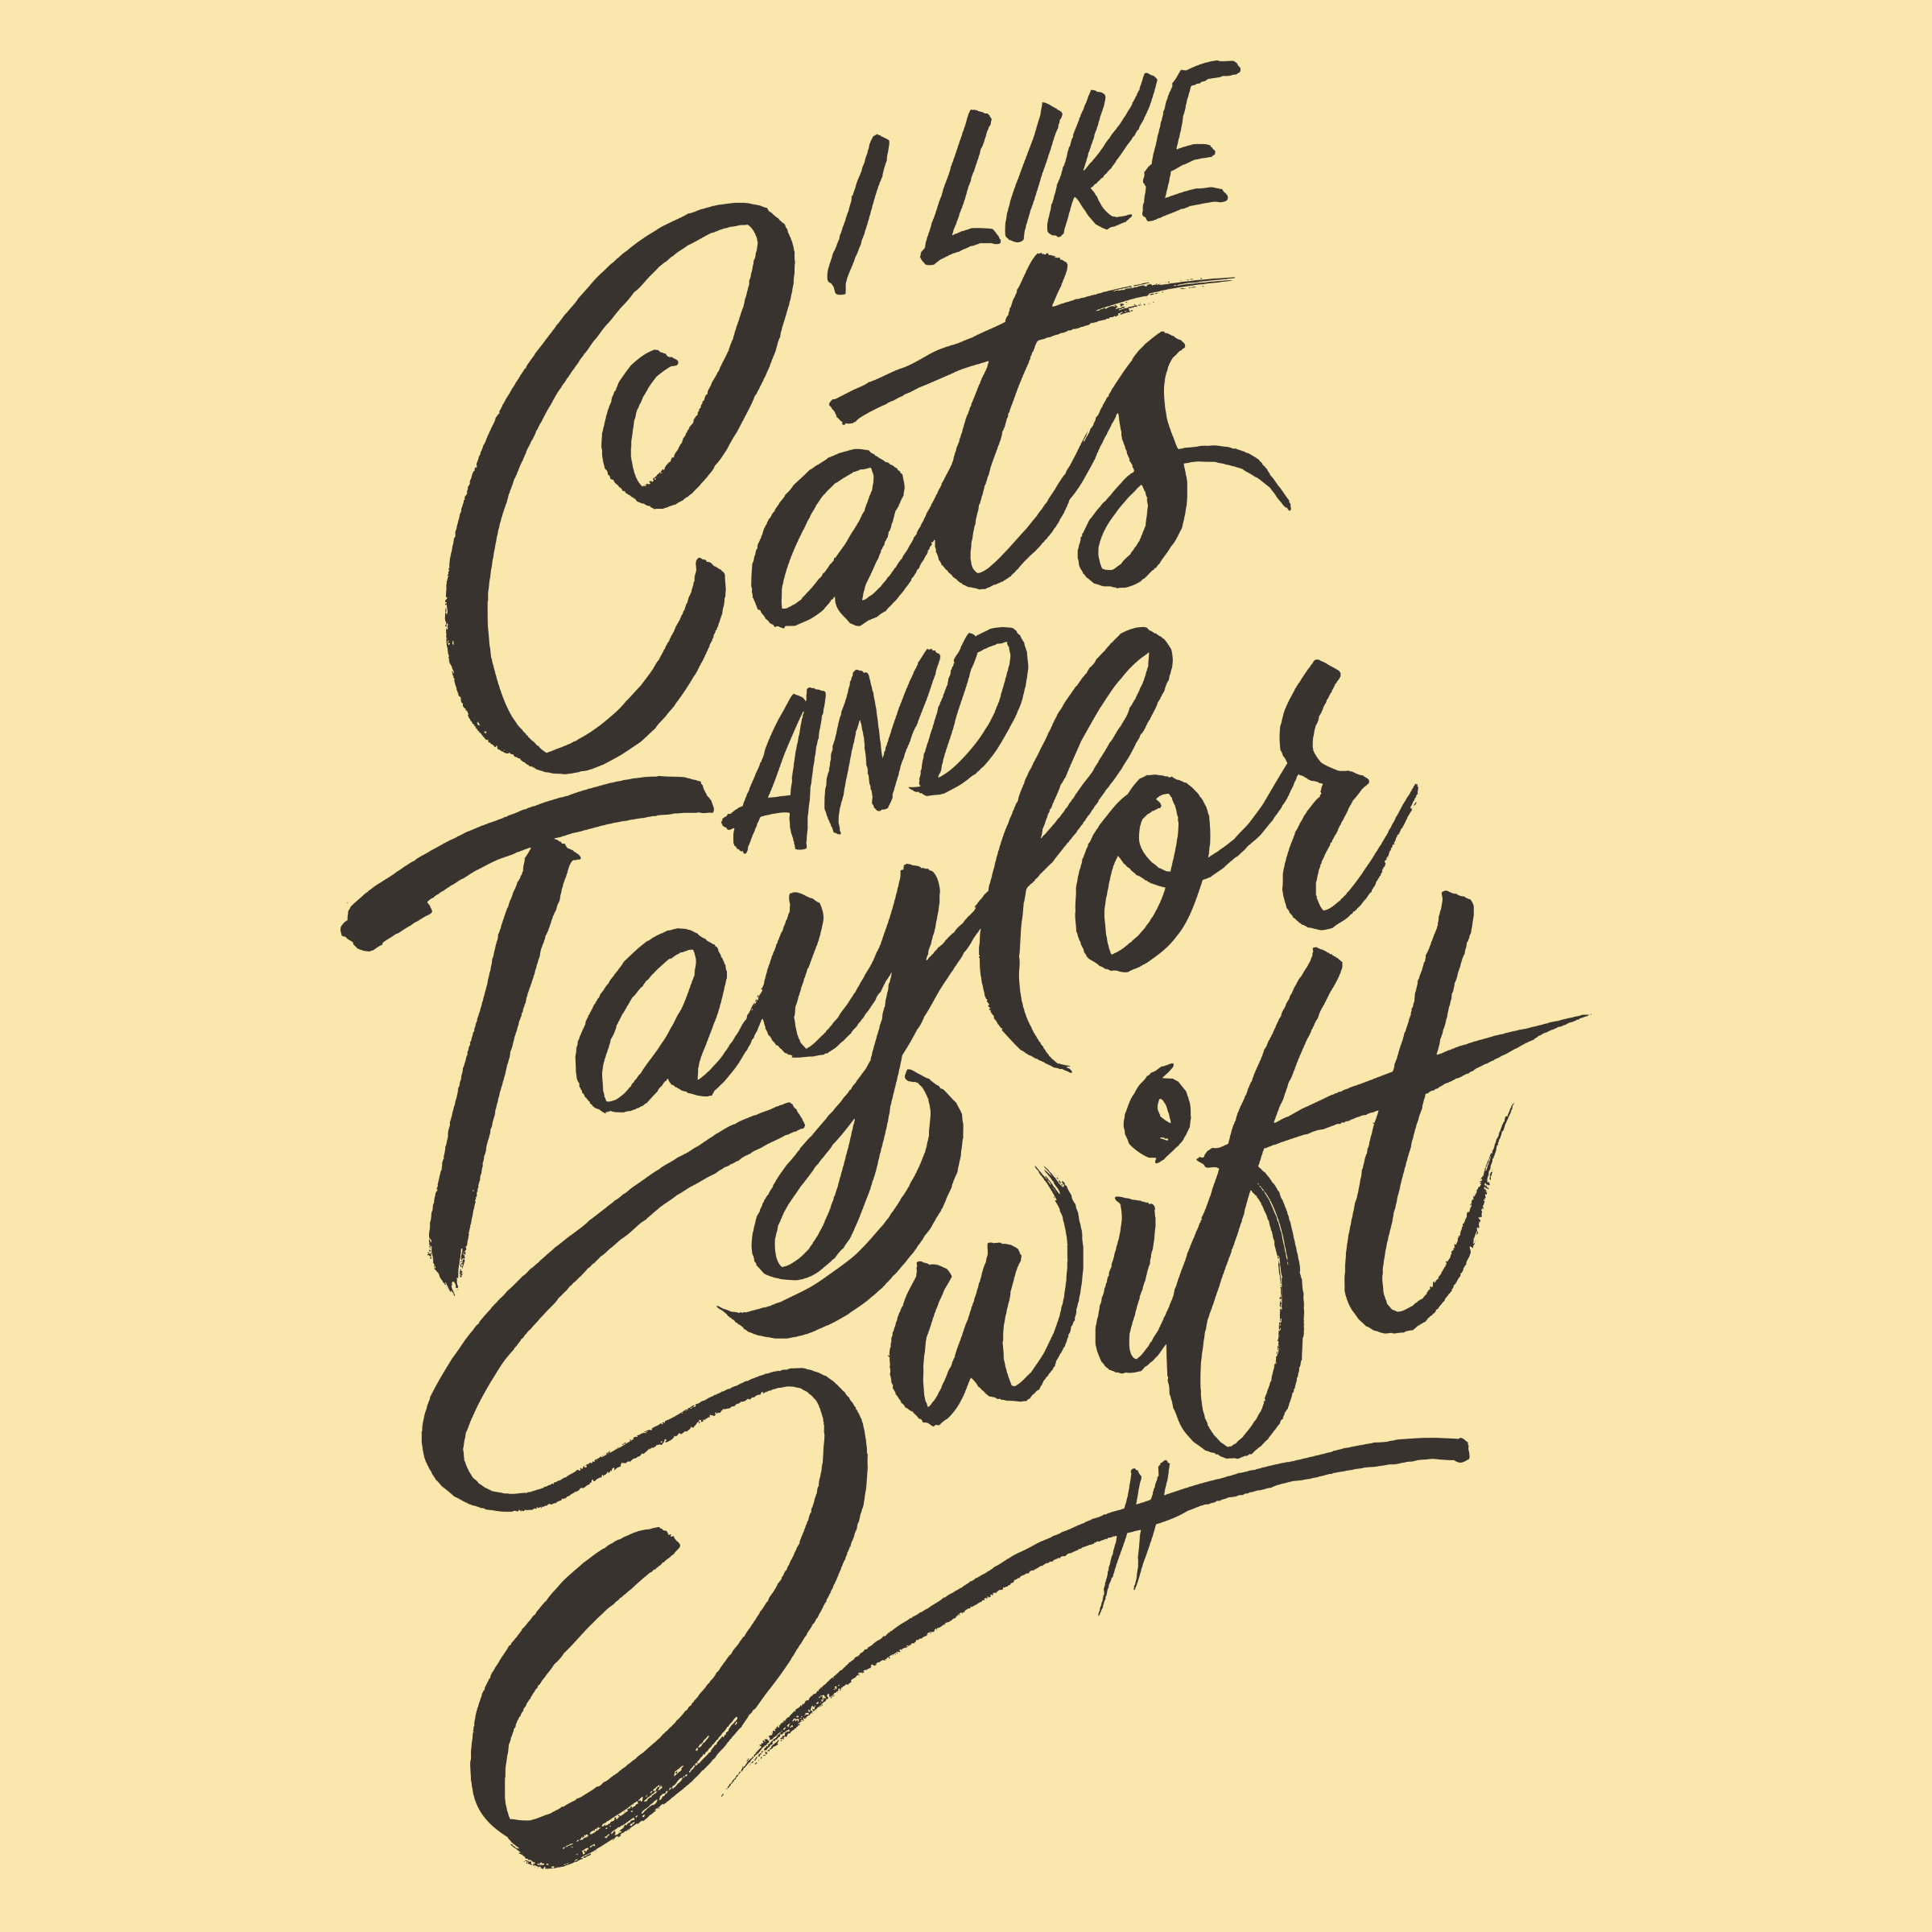 I Like Cats and Taylor Swift